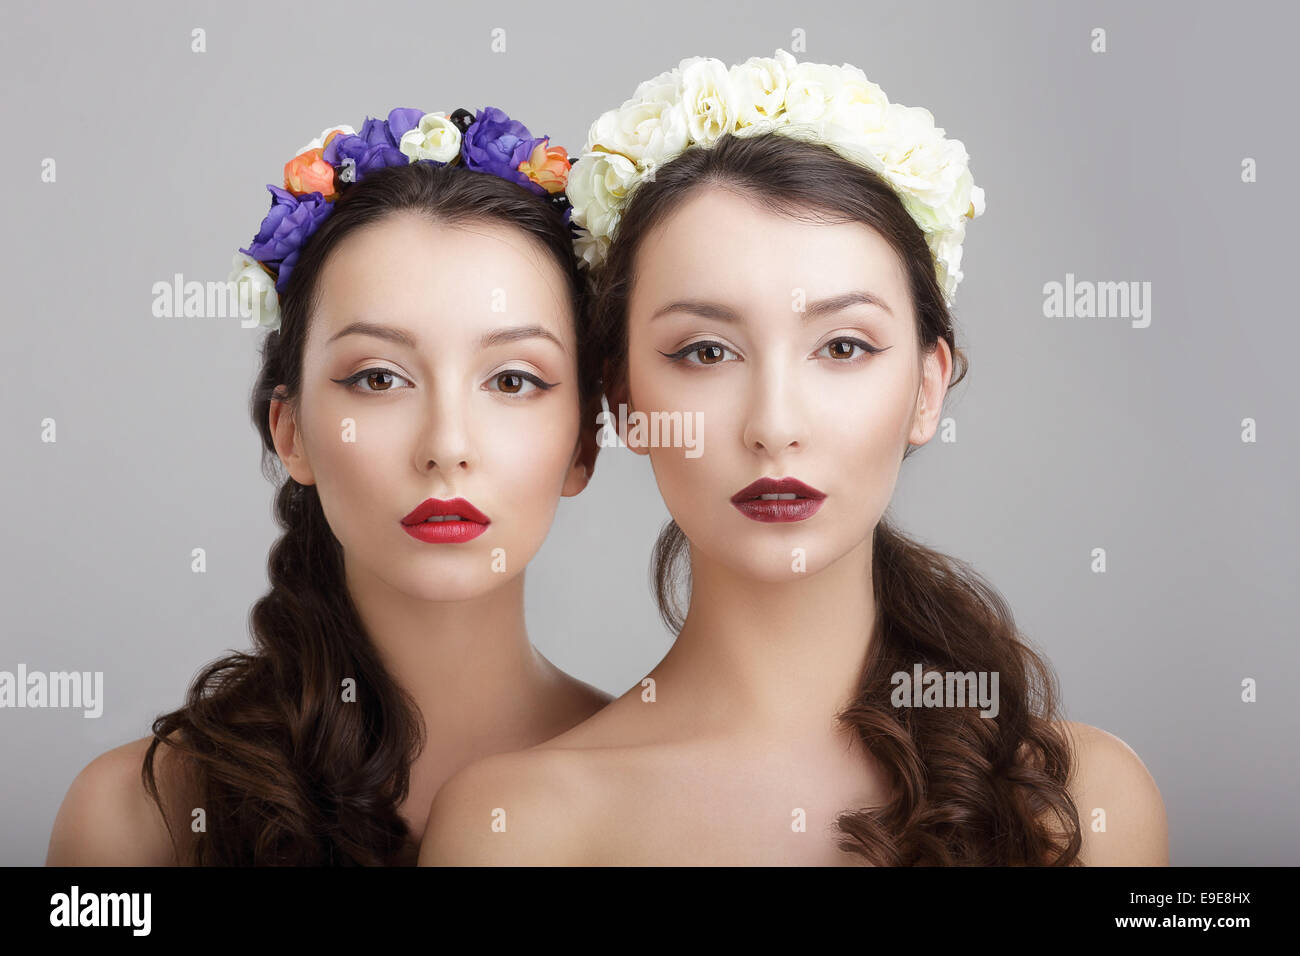 Elegance. Two Women with Wreaths of Flowers. Fantasy - Stock Image